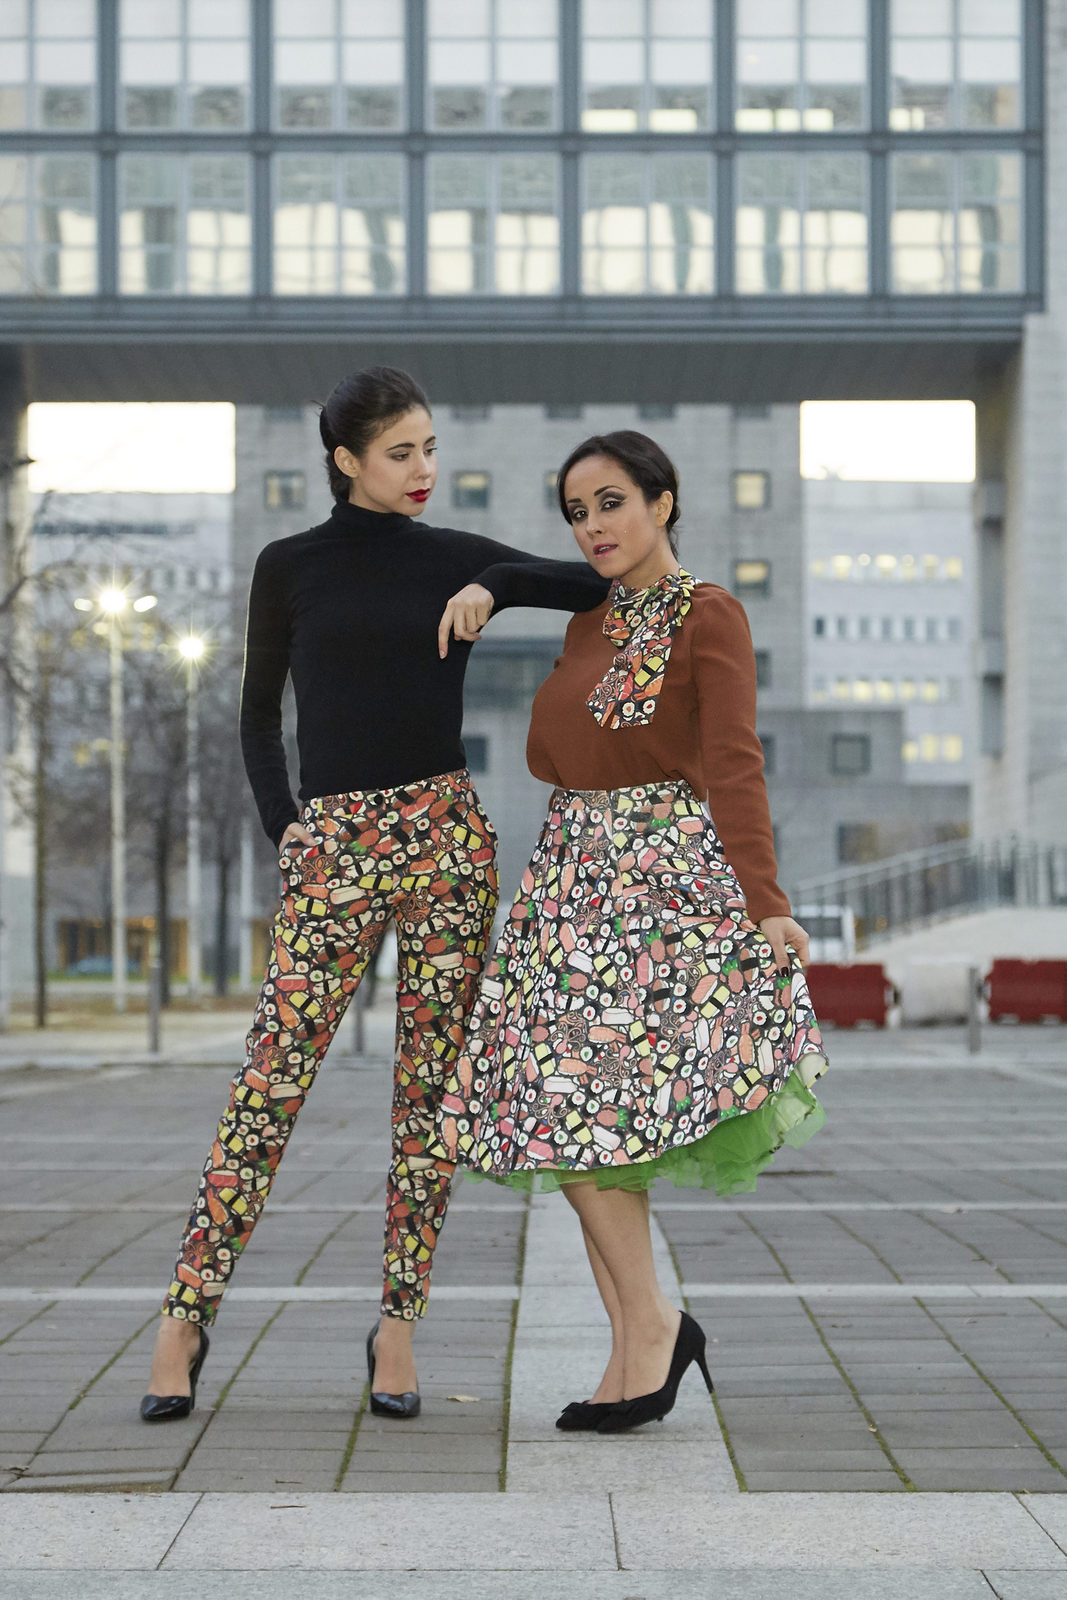 editorial, ultrachic milano, Jessica Neumann, Juliane Borges, fashion, outfit, sisters, Culture & Trend Magazine, sushi